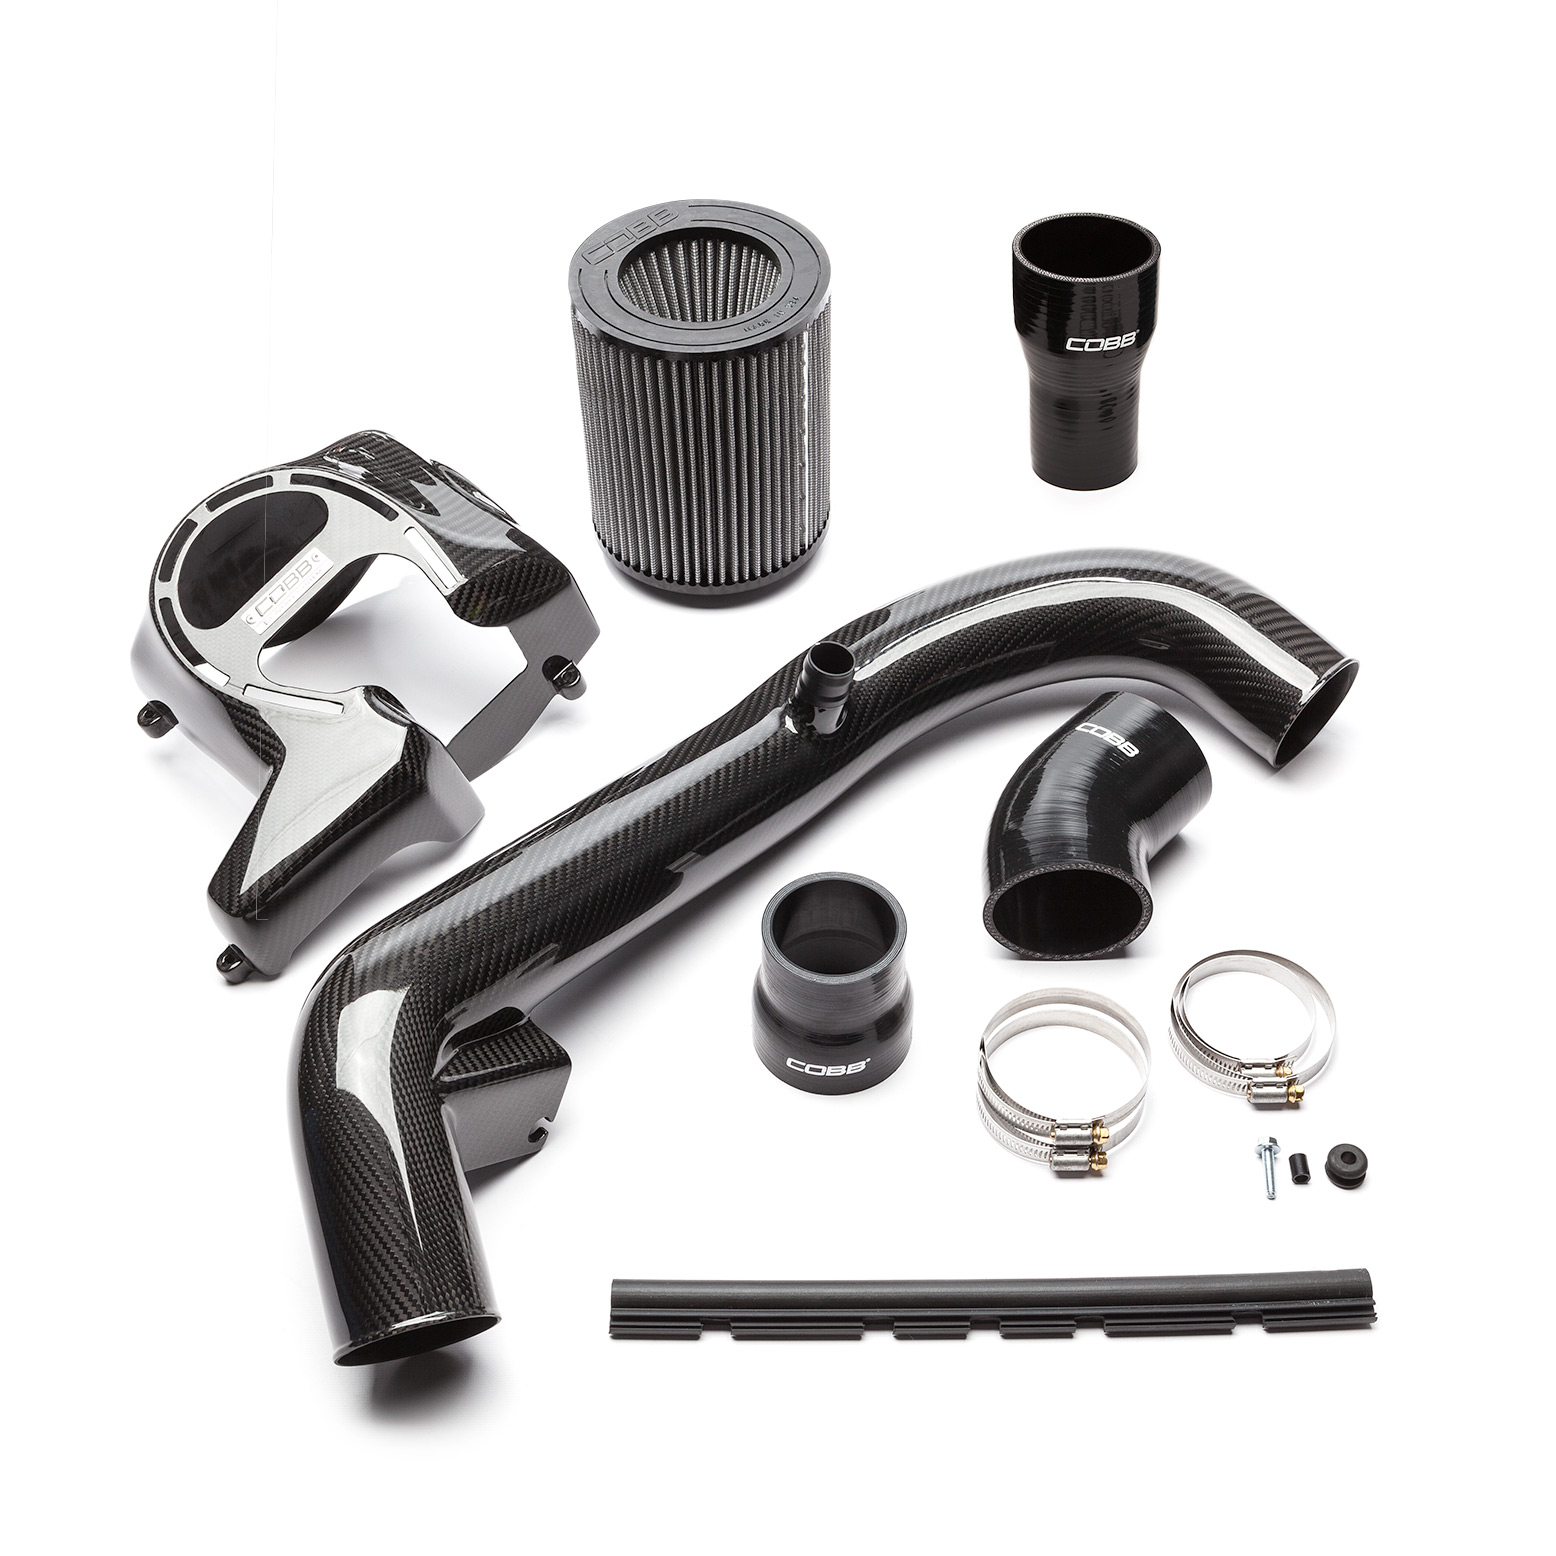 Ford Carbon Fiber Intake System Focus RS 2016-2018, Focus ST 2013-2018